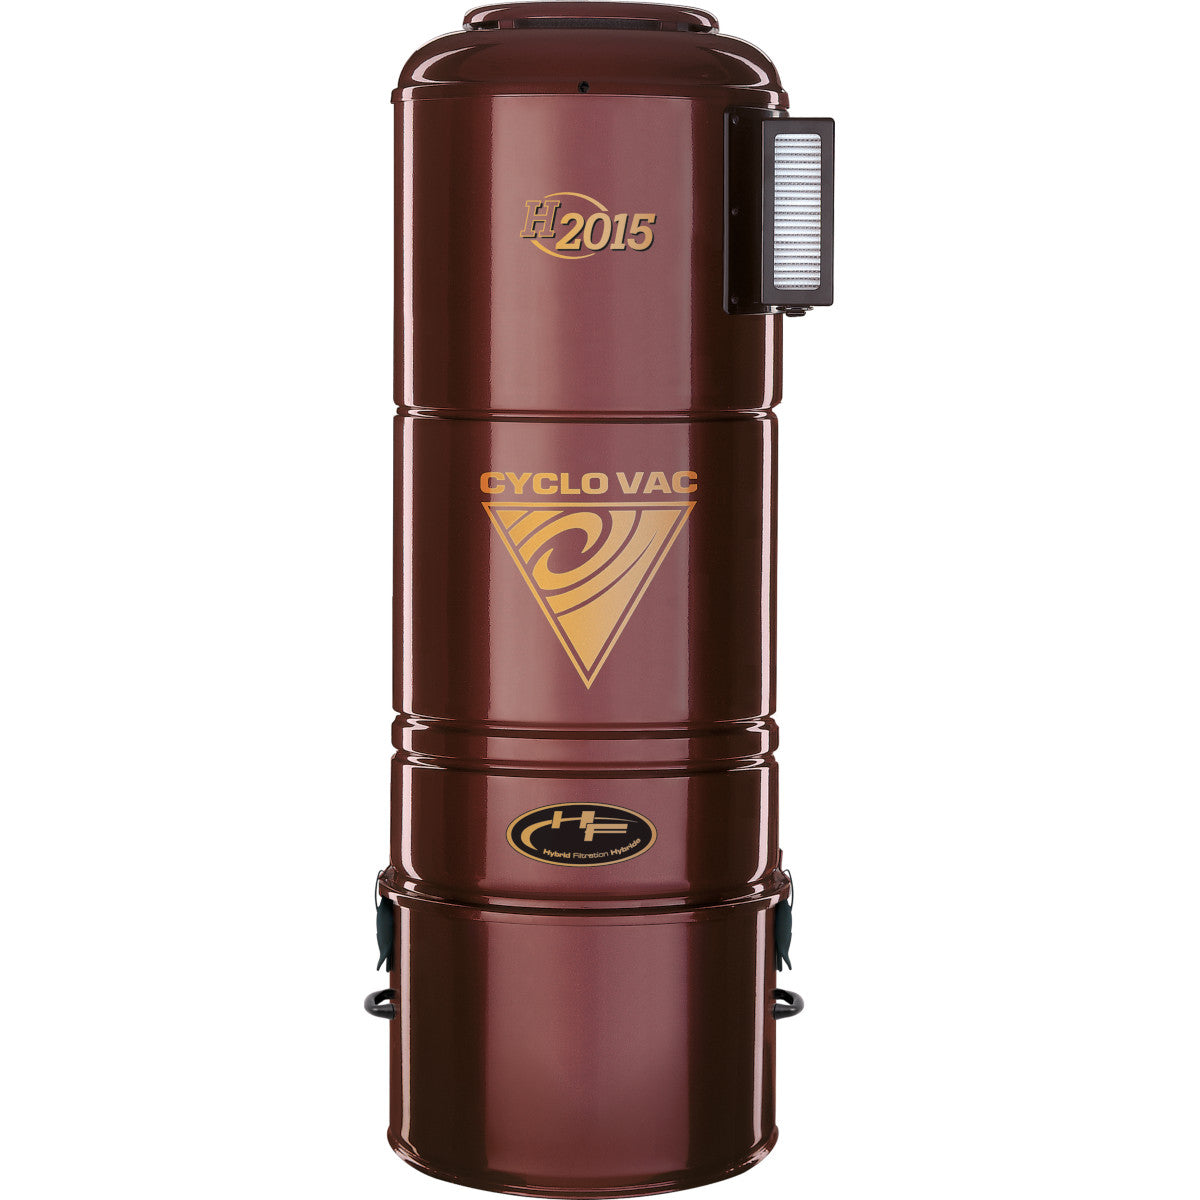 Cyclovac H2015 Canister - Super Vacs